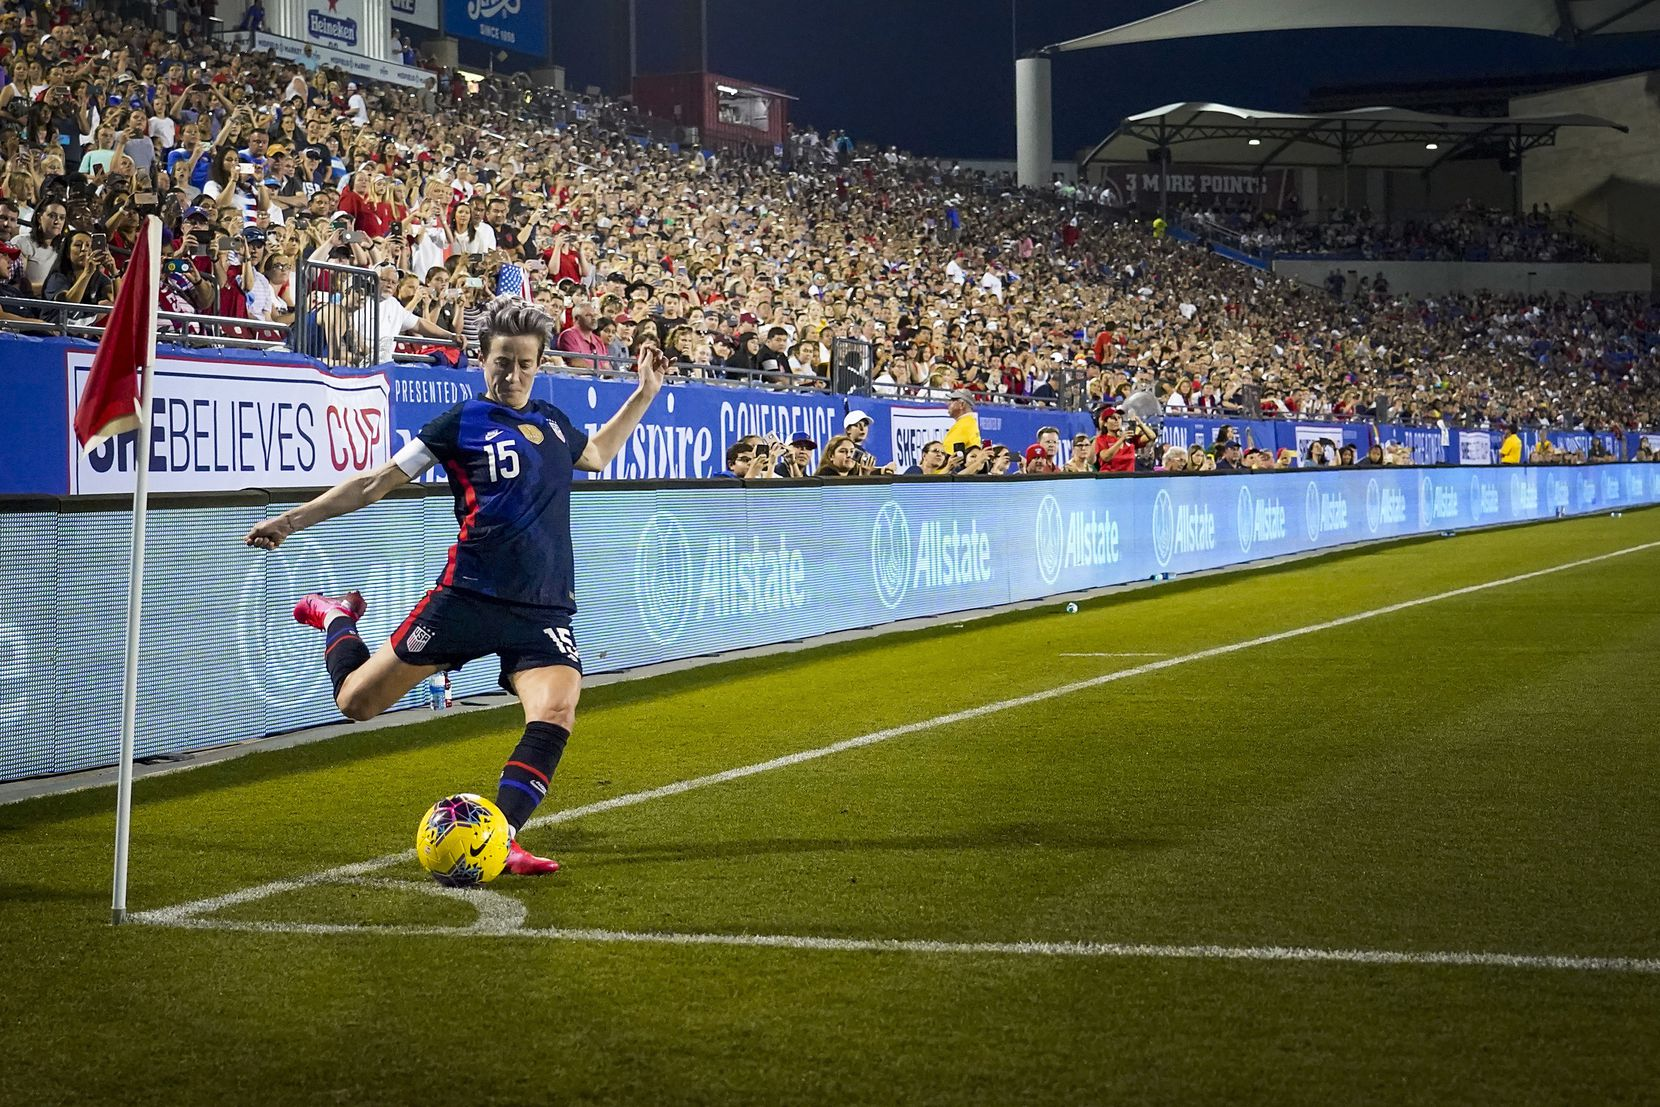 U.S. Women's National Team forward Megan Rapinoe took a corner kick during the first half of a SheBelieves Cup soccer game against Japan on March 11, 2020, in Frisco. A sold-out stadium of 19,096 fans was on hand to watch the U.S. victory in what would become one of the last large gatherings in North Texas before orders restricting such gatherings would go into effect.